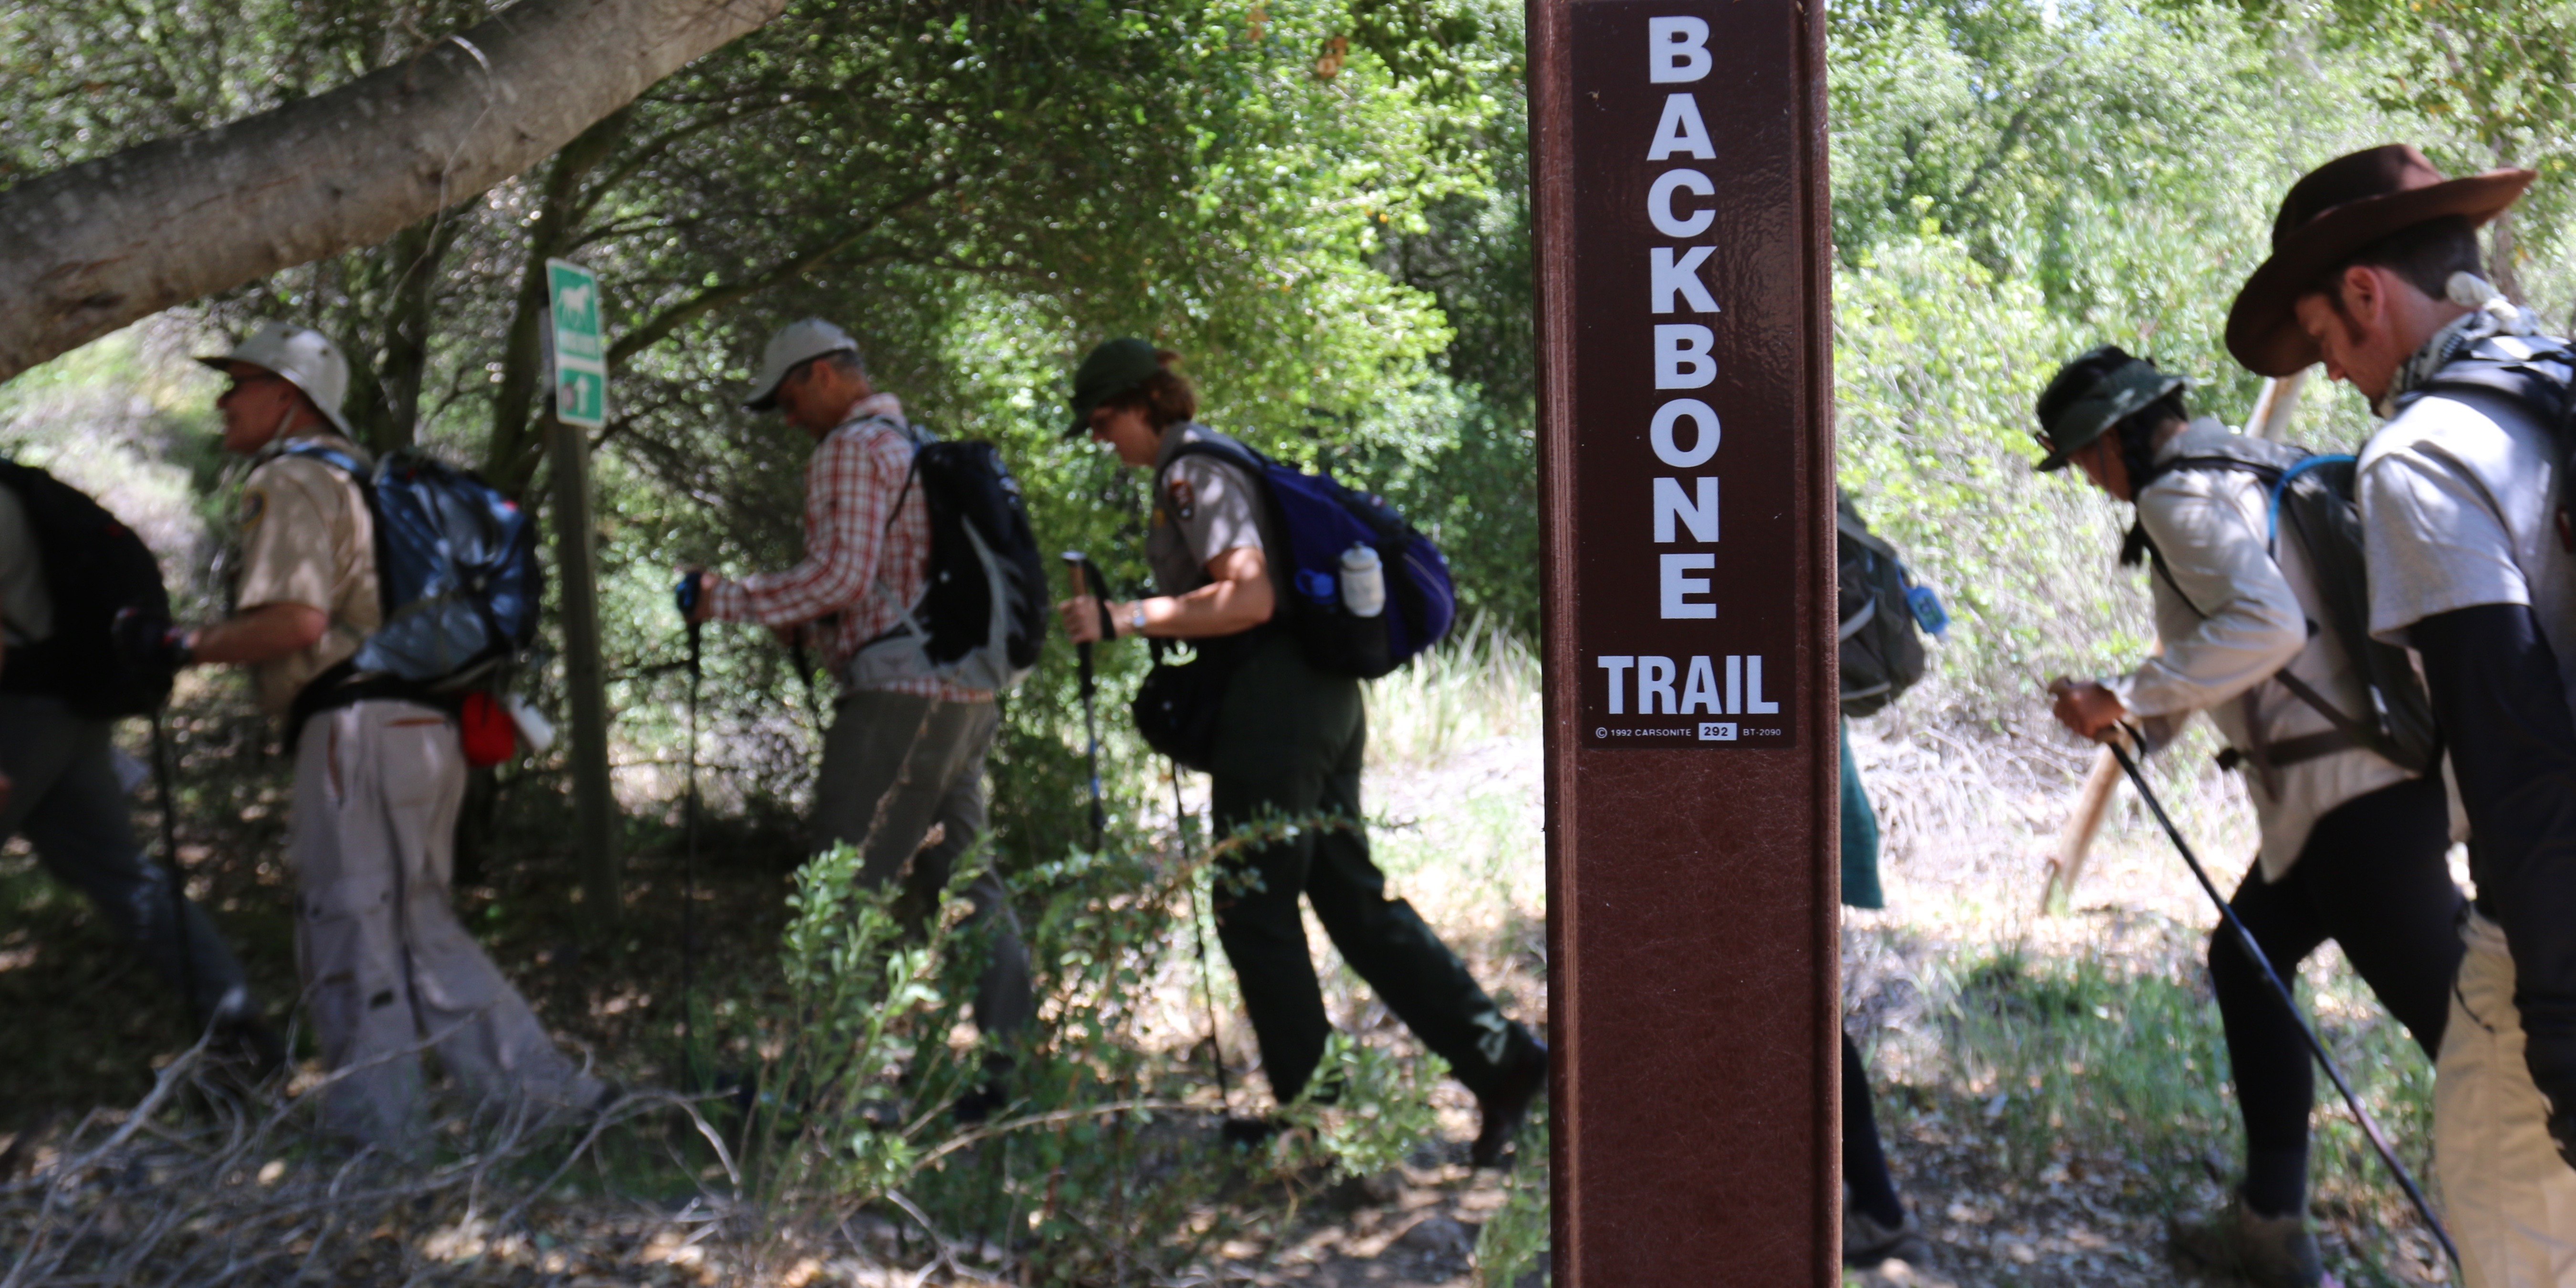 Hikers on the Backbone Trail